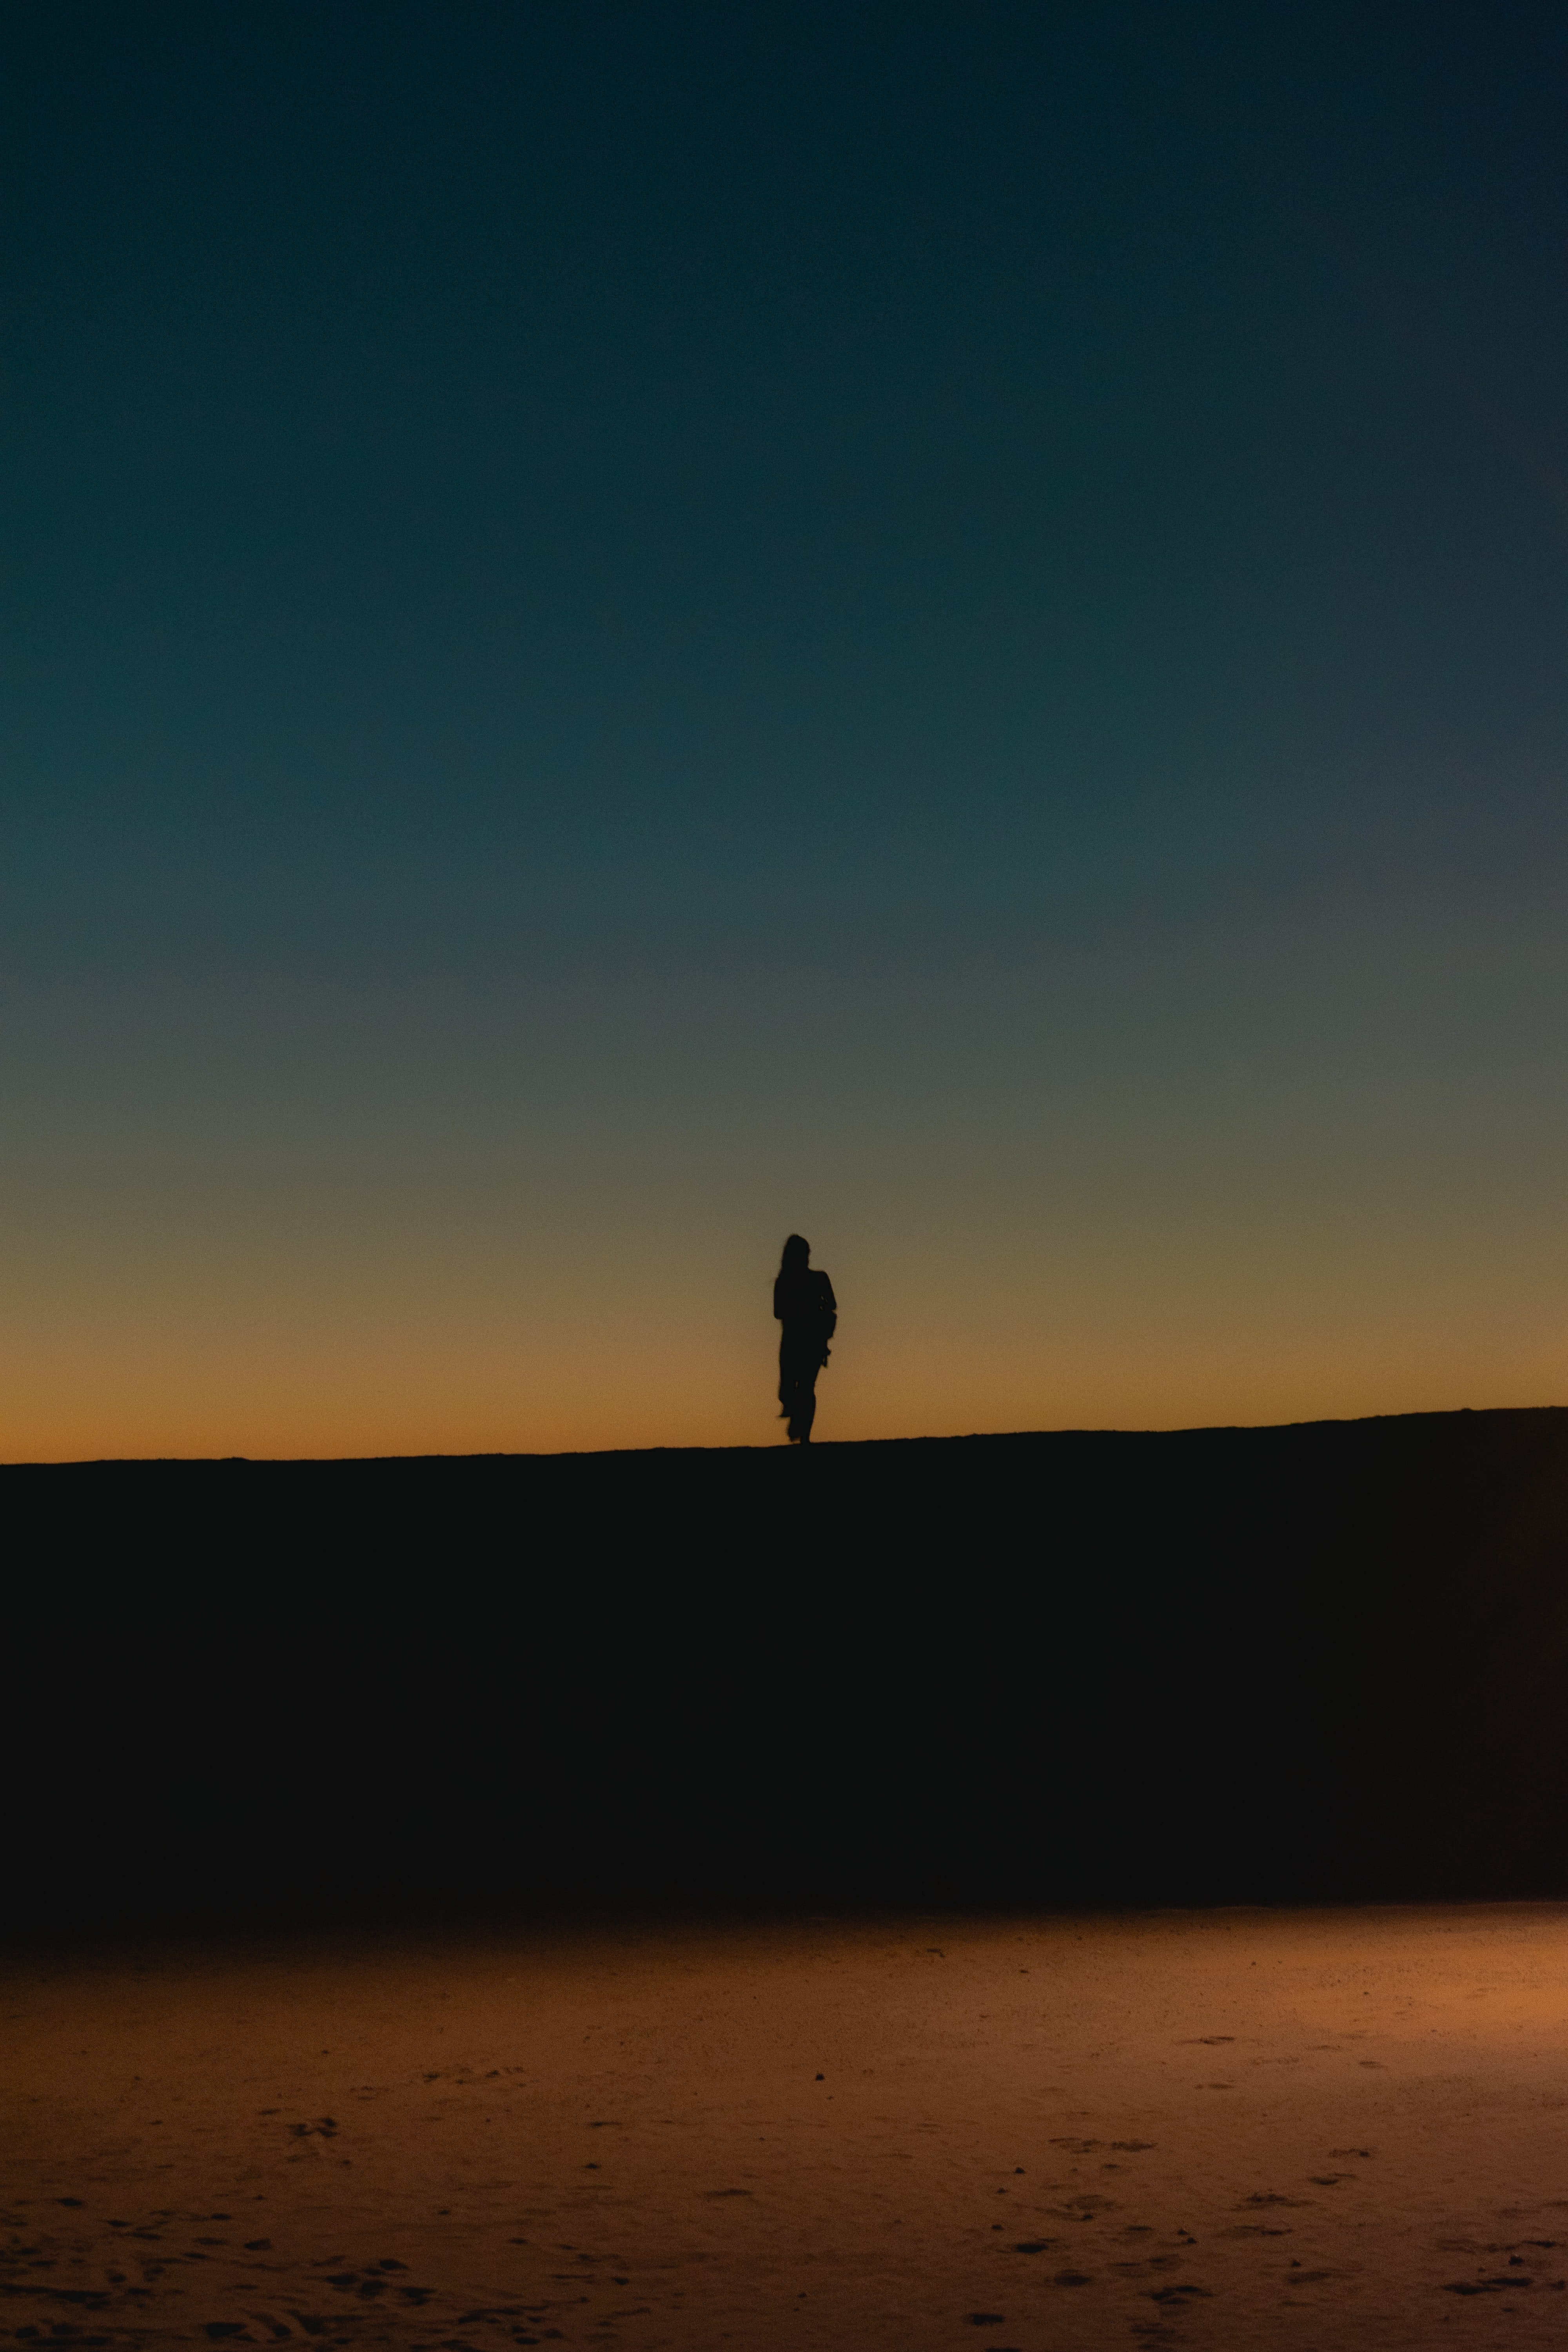 silhouette of person standing on black surface